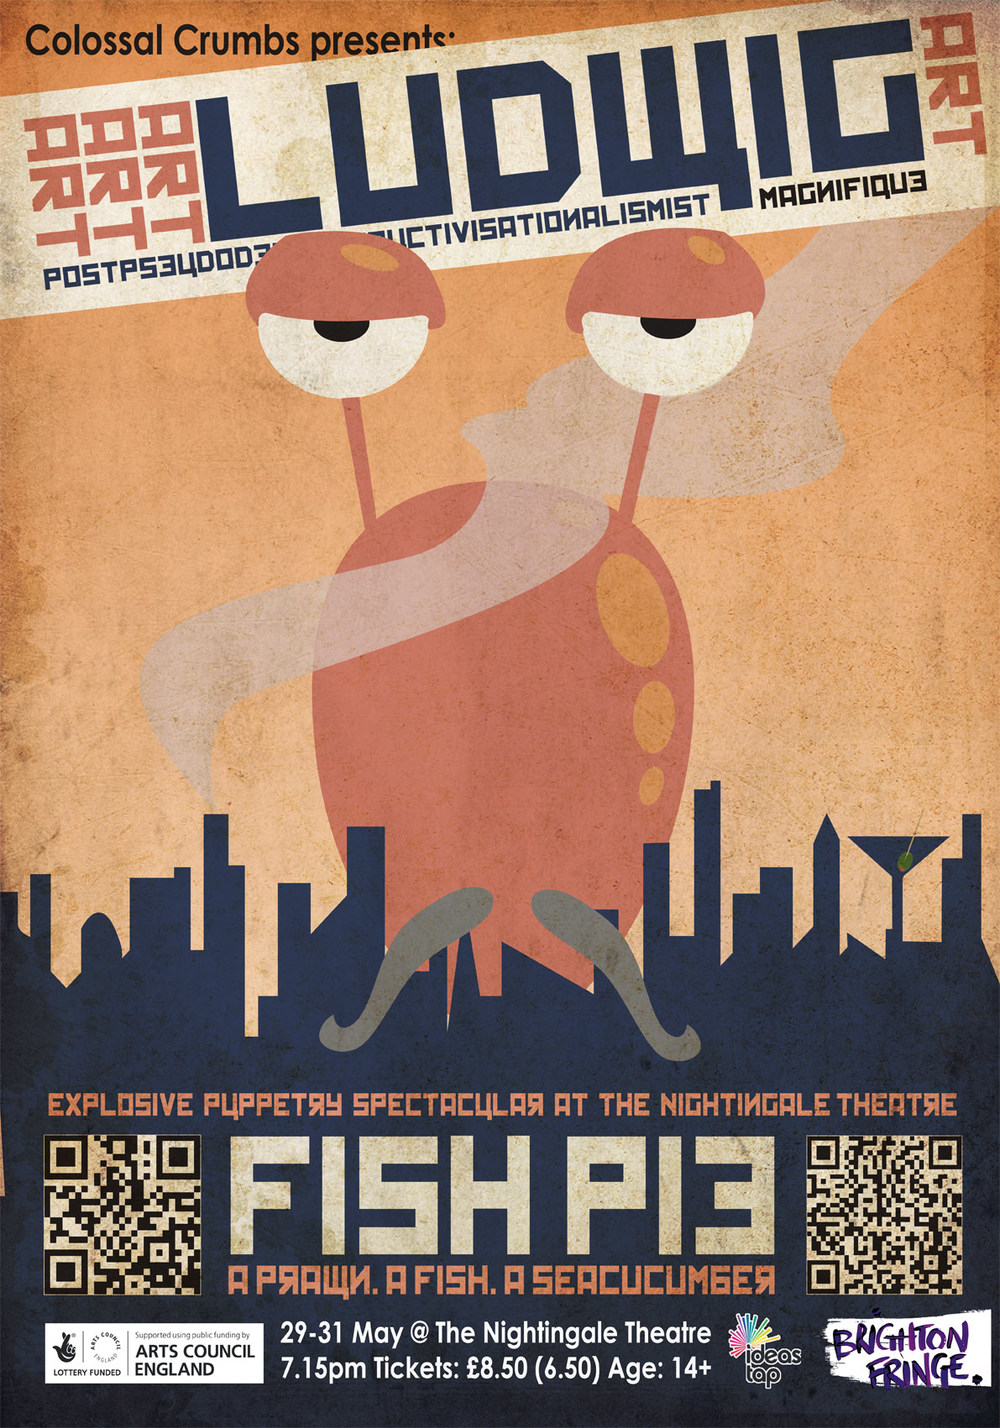 Poster design 1 of 3, for Colossal Crumbs' puppet show FISHPIE. This poster was the WINNER OF THE BRIGHTON FRINGE IMPACT AWARD 2013